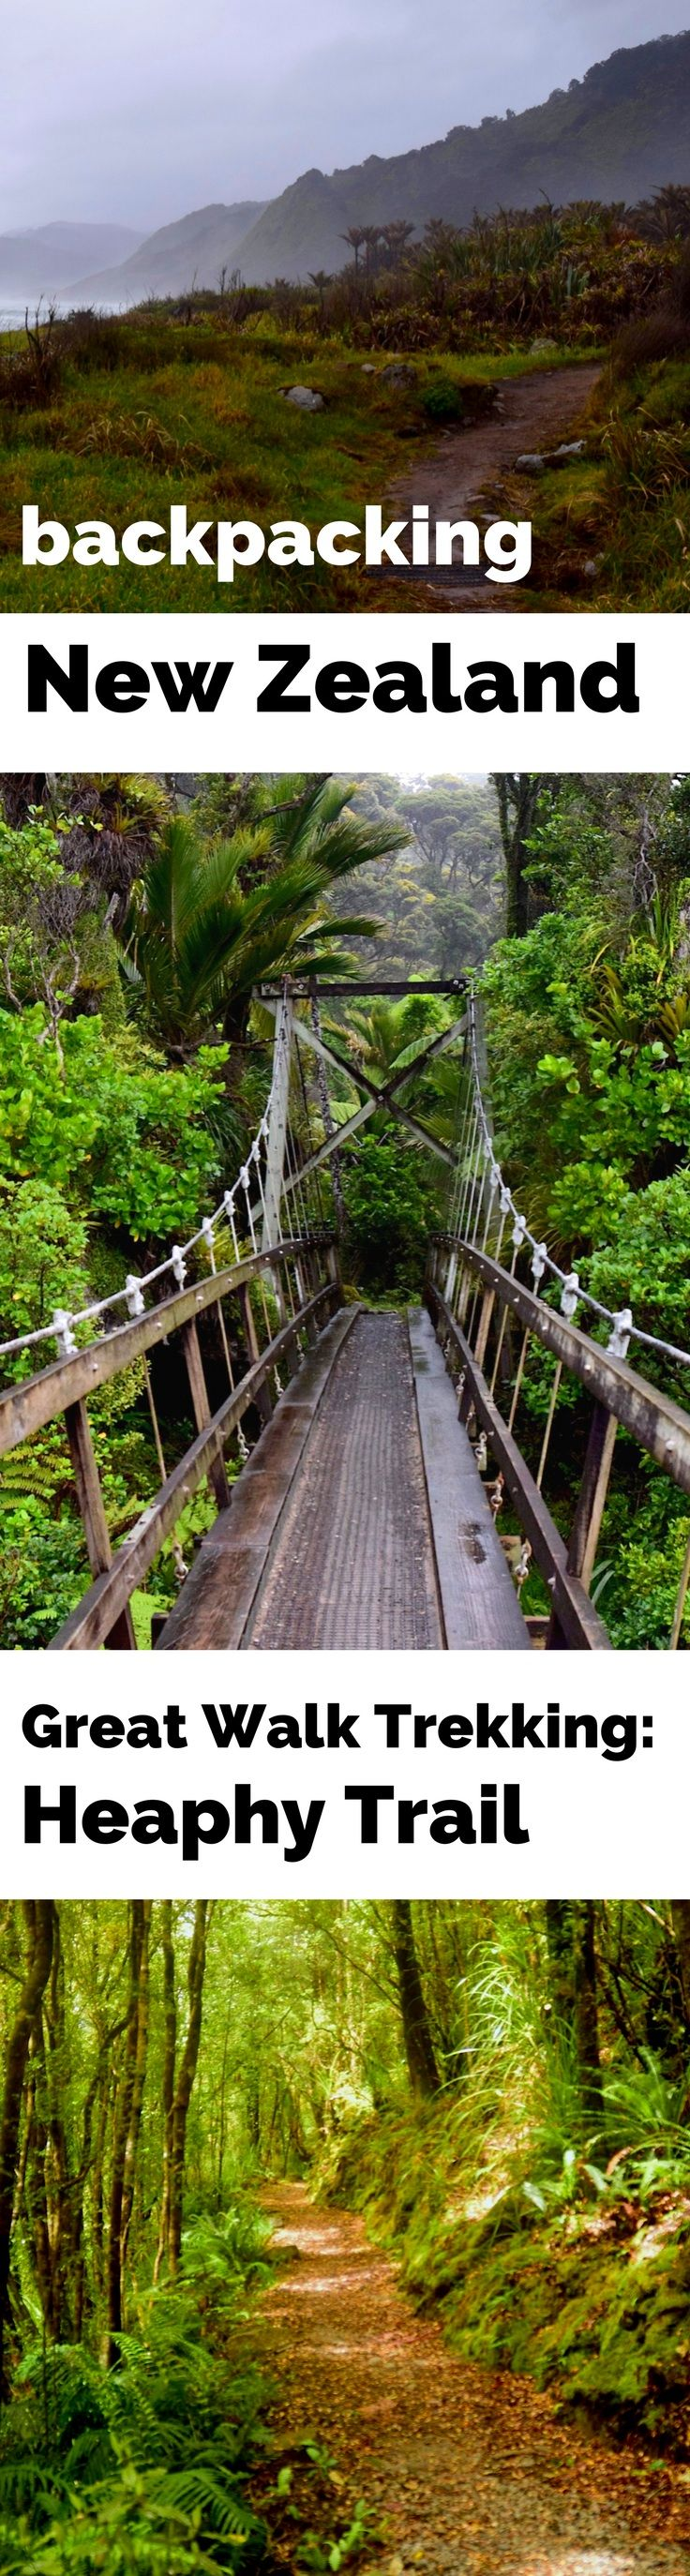 Backpacking New Zealand's Heaphy Track – one of New Zealand's famous Great Walks along the coast.